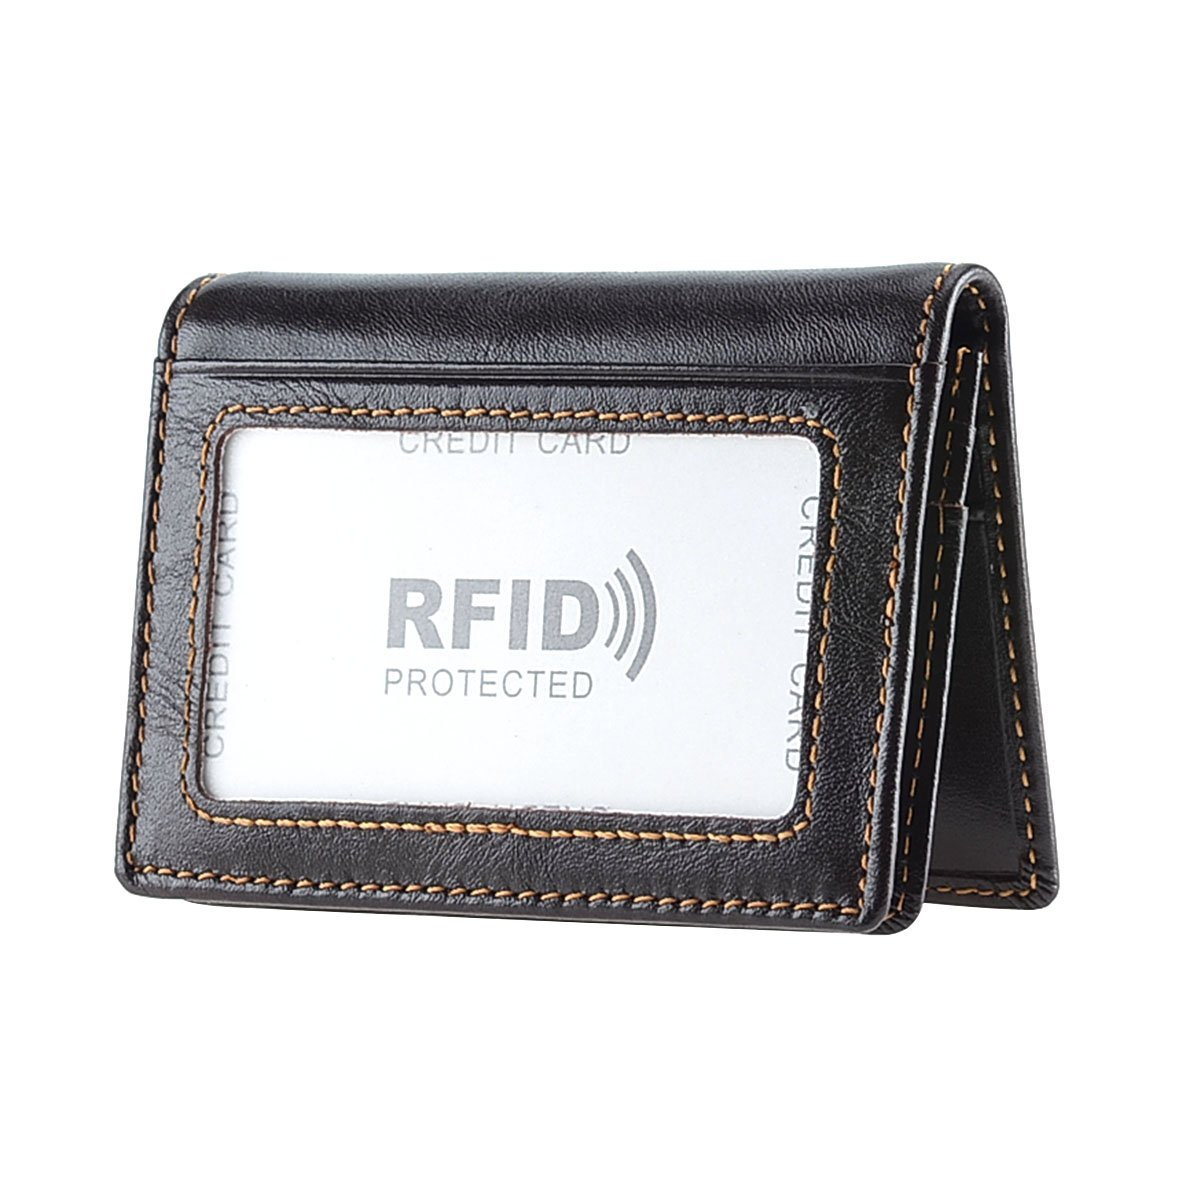 Genuine Leather Wallets RFID Blocking Slim Wallet Credit Card Holder Bifold Front Pocket for Men